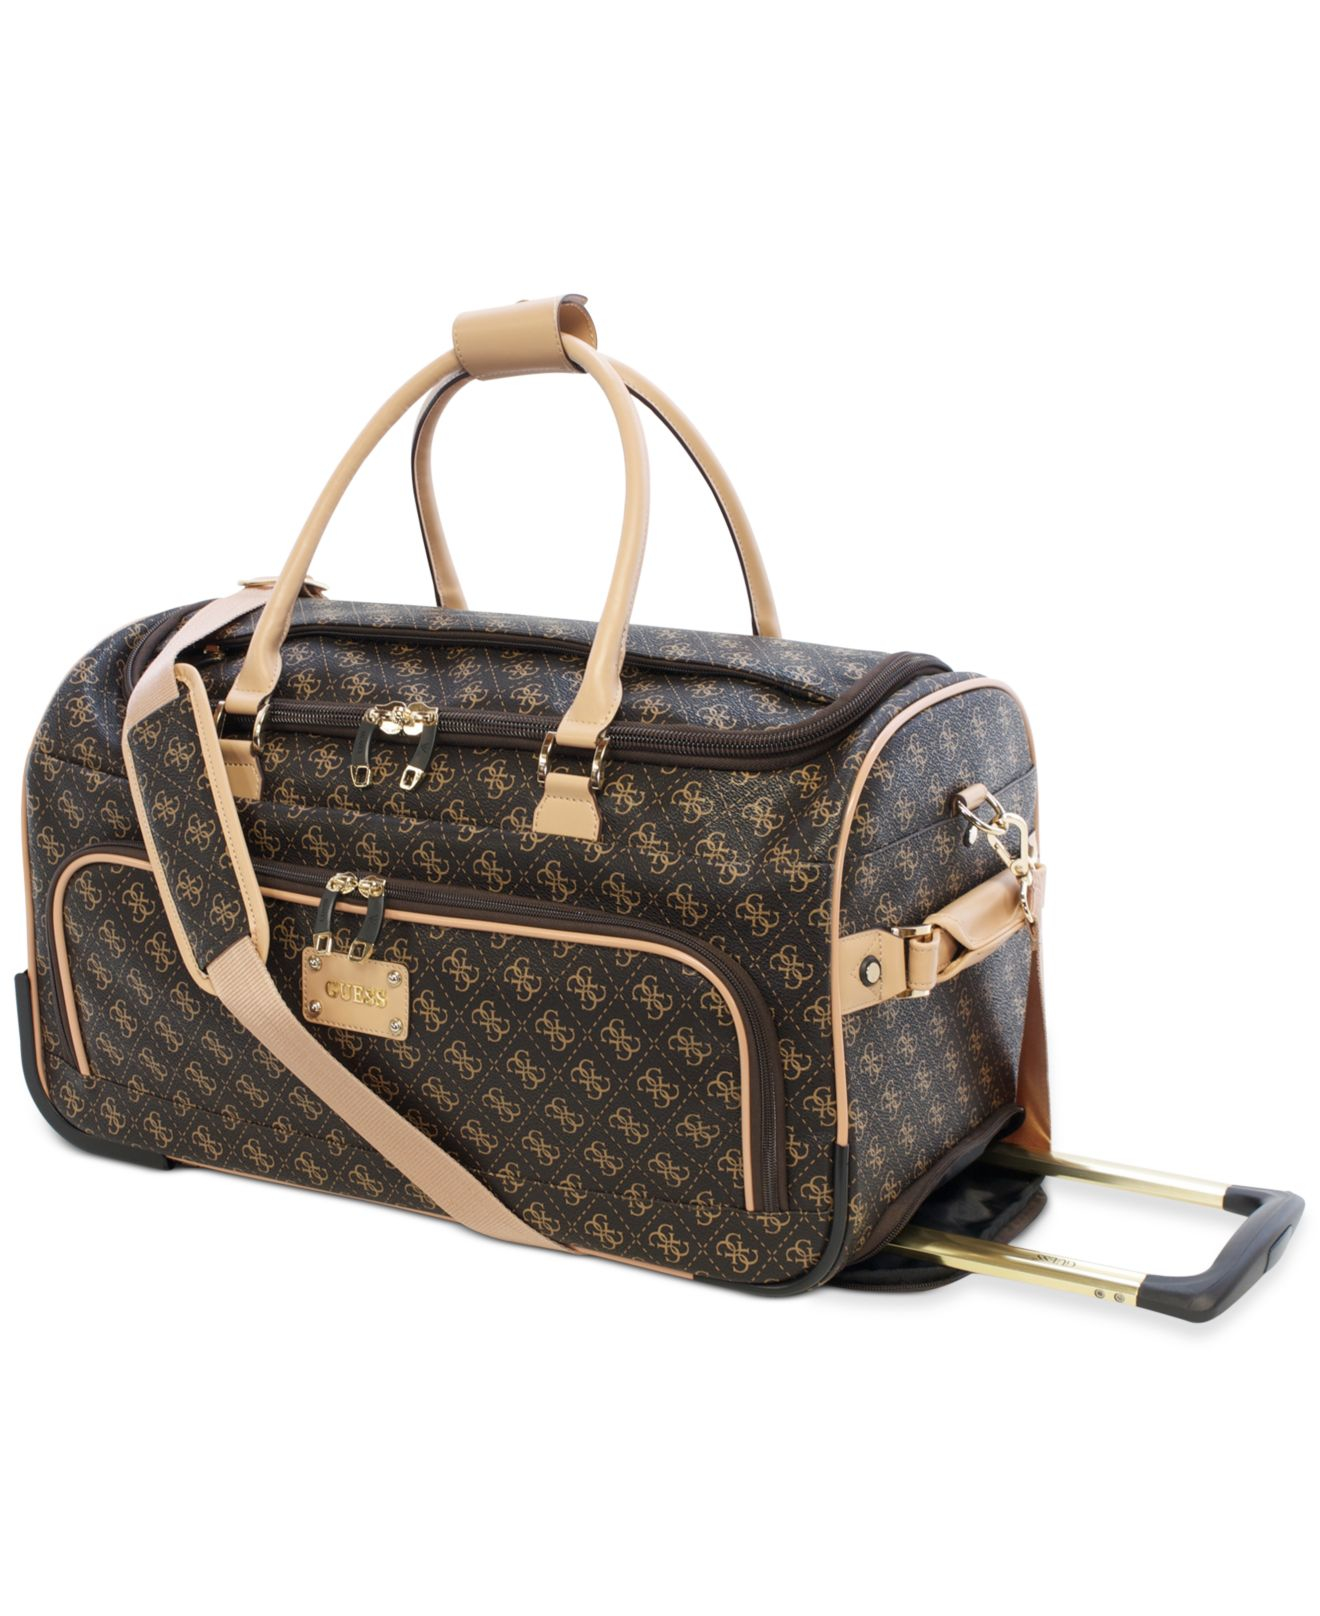 Lyst - Guess Logo Affair Dlx Rolling Duffel in Brown for Men 94707703b727f